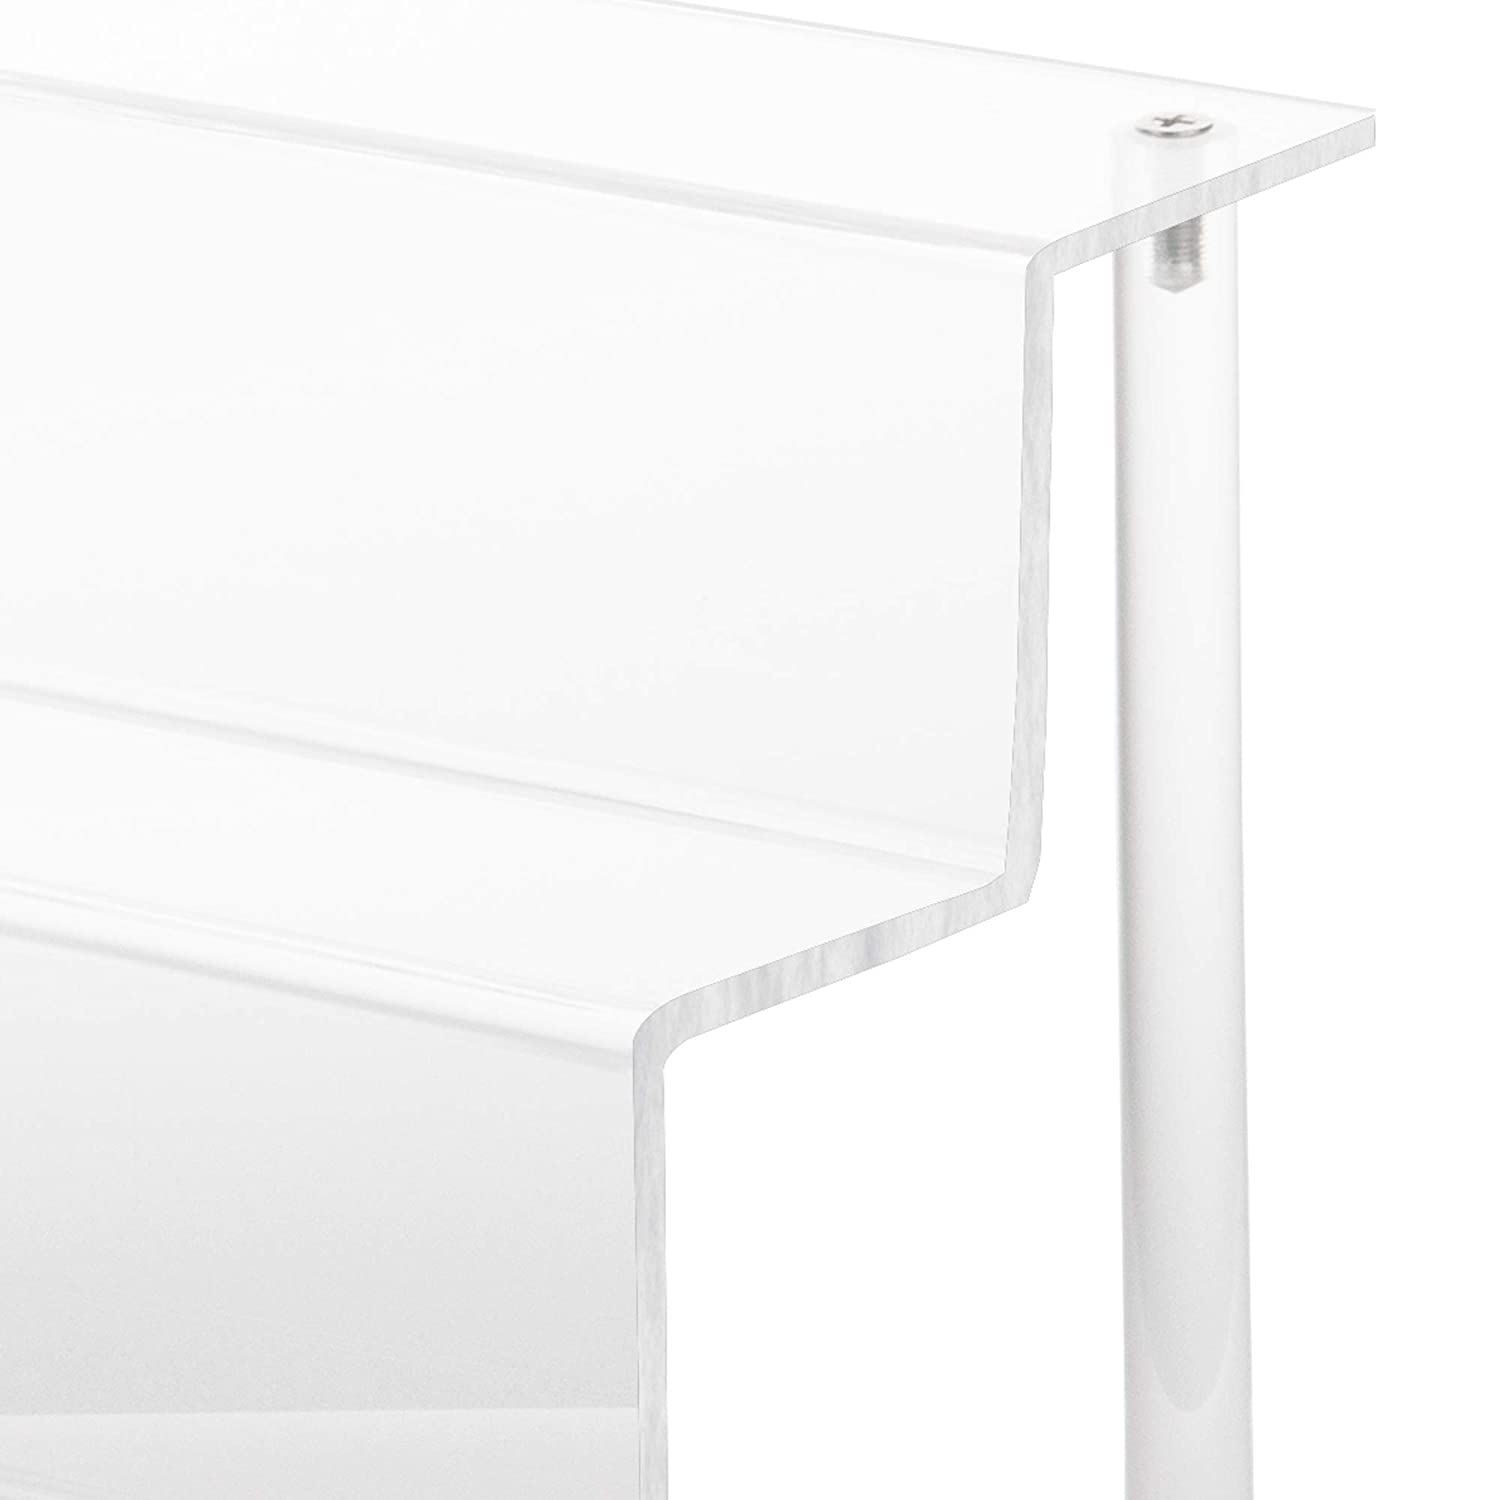 YestBuy 1 Pack 3 Step Clear Acrylic Shelf Riser Display 3-Tier Acrylic Display for Decoration and Organizer